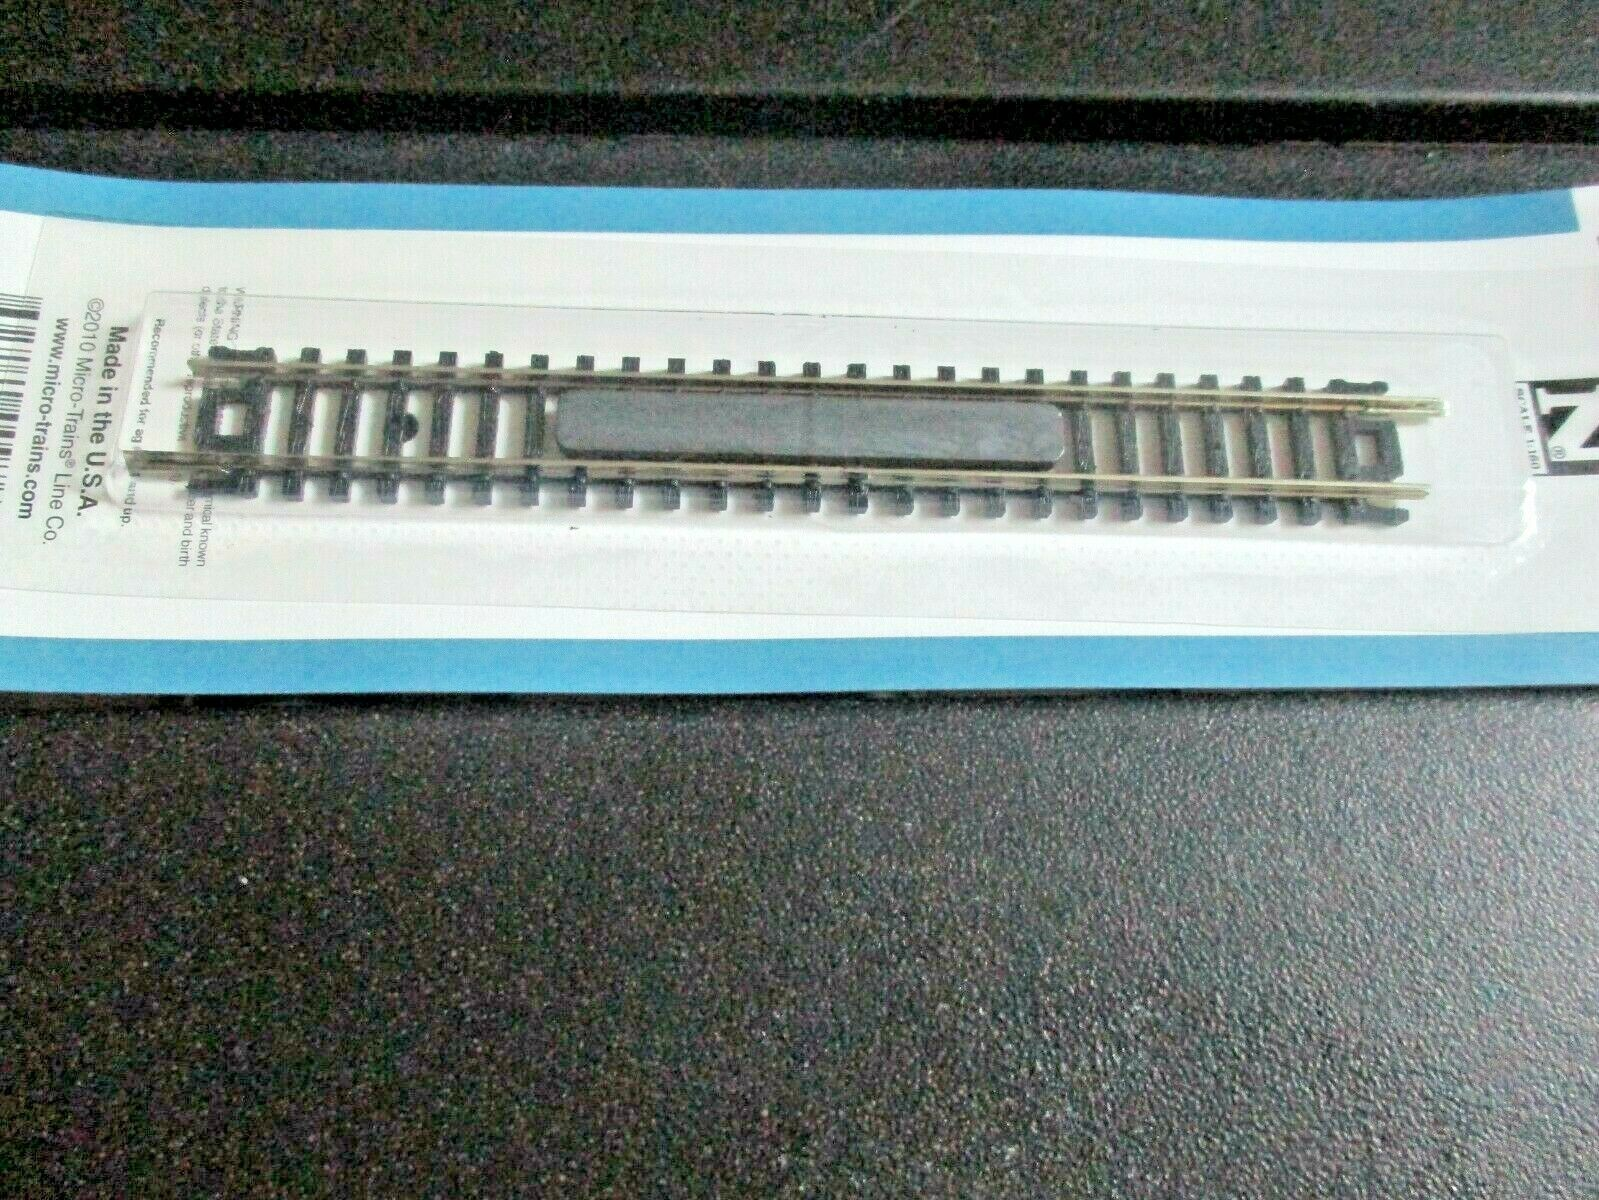 Micro-Trains Stock # 98800173 (1311) Magne-Matic Uncoupler mounted in Track